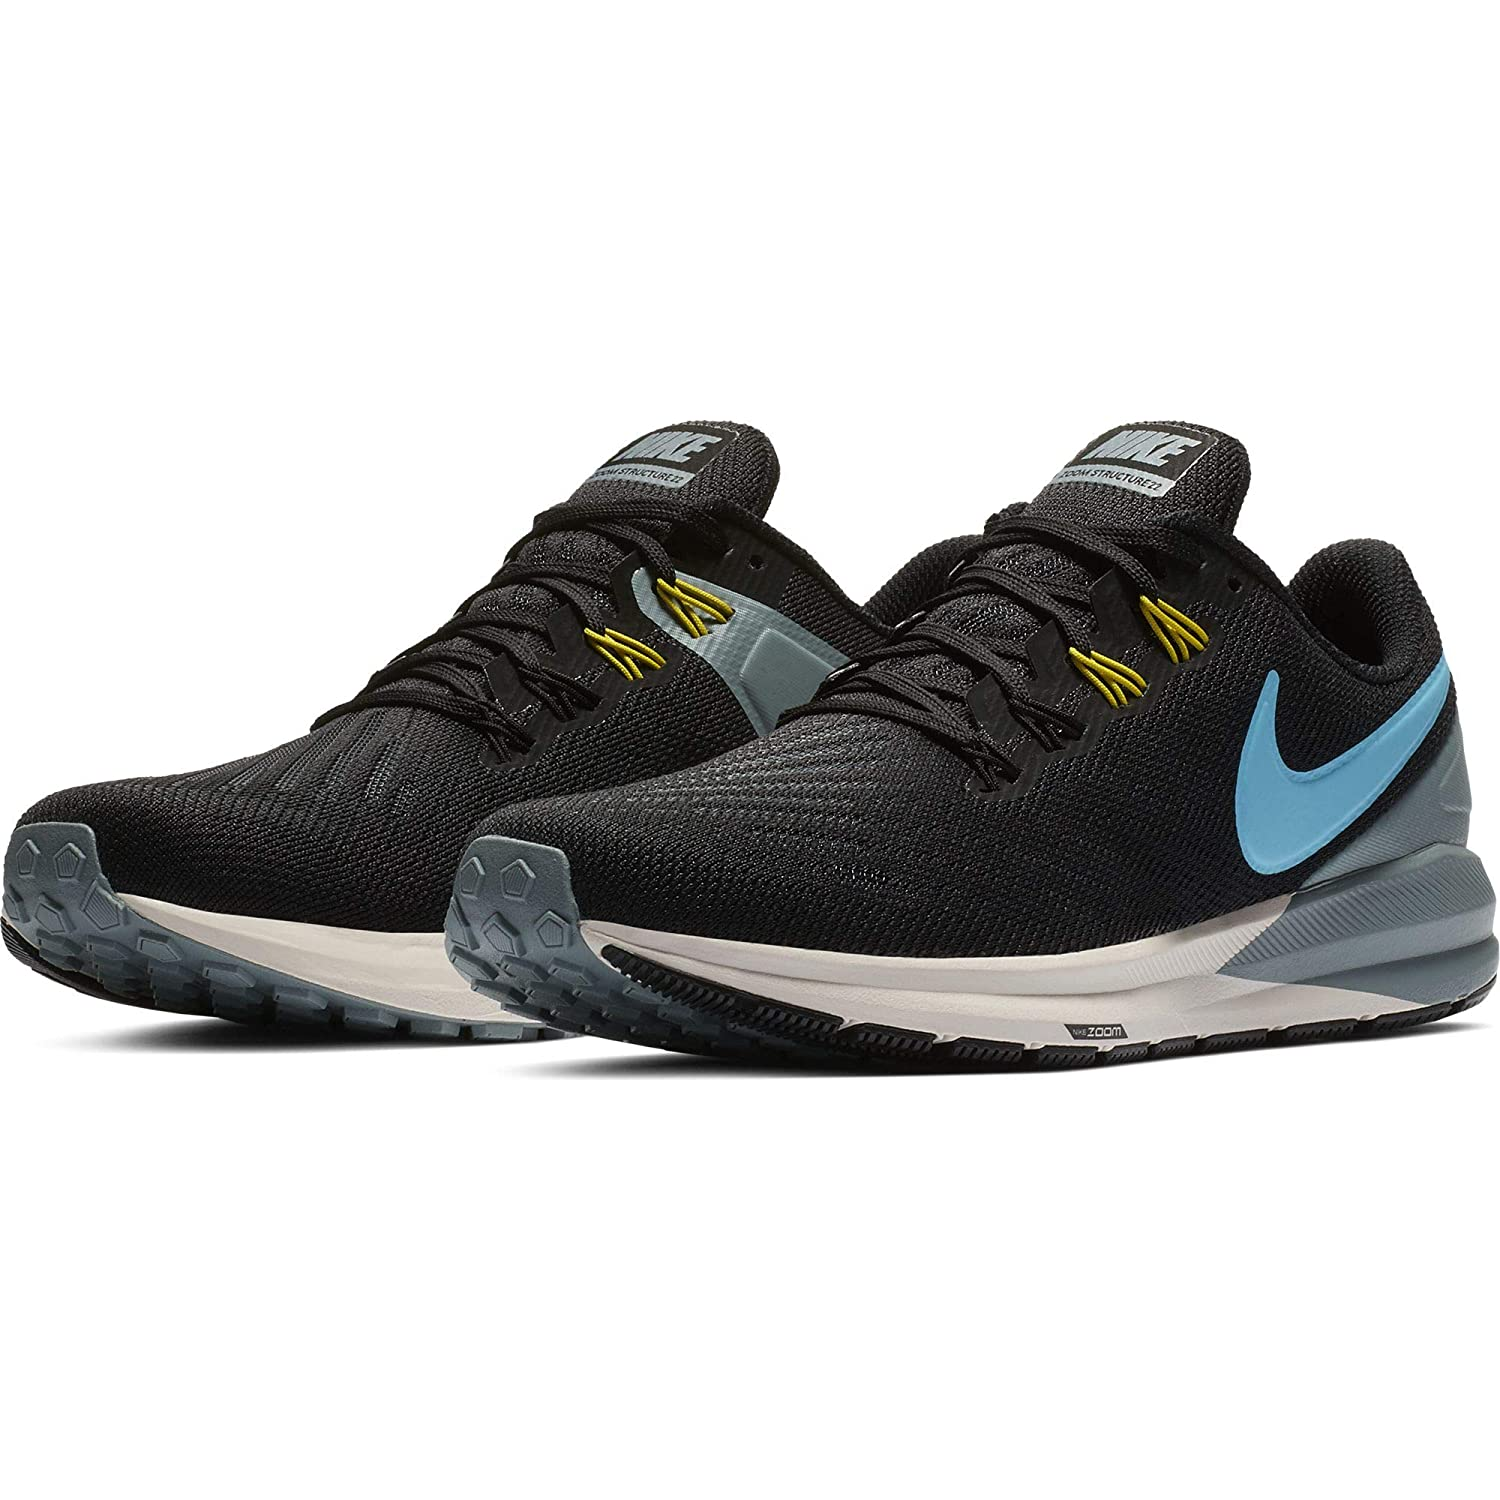 finest selection ec25e 637ad Nike Men's Air Zoom Structure 22 Running Shoe Black/Blue Fury/Aviator Grey  Size 14 M US